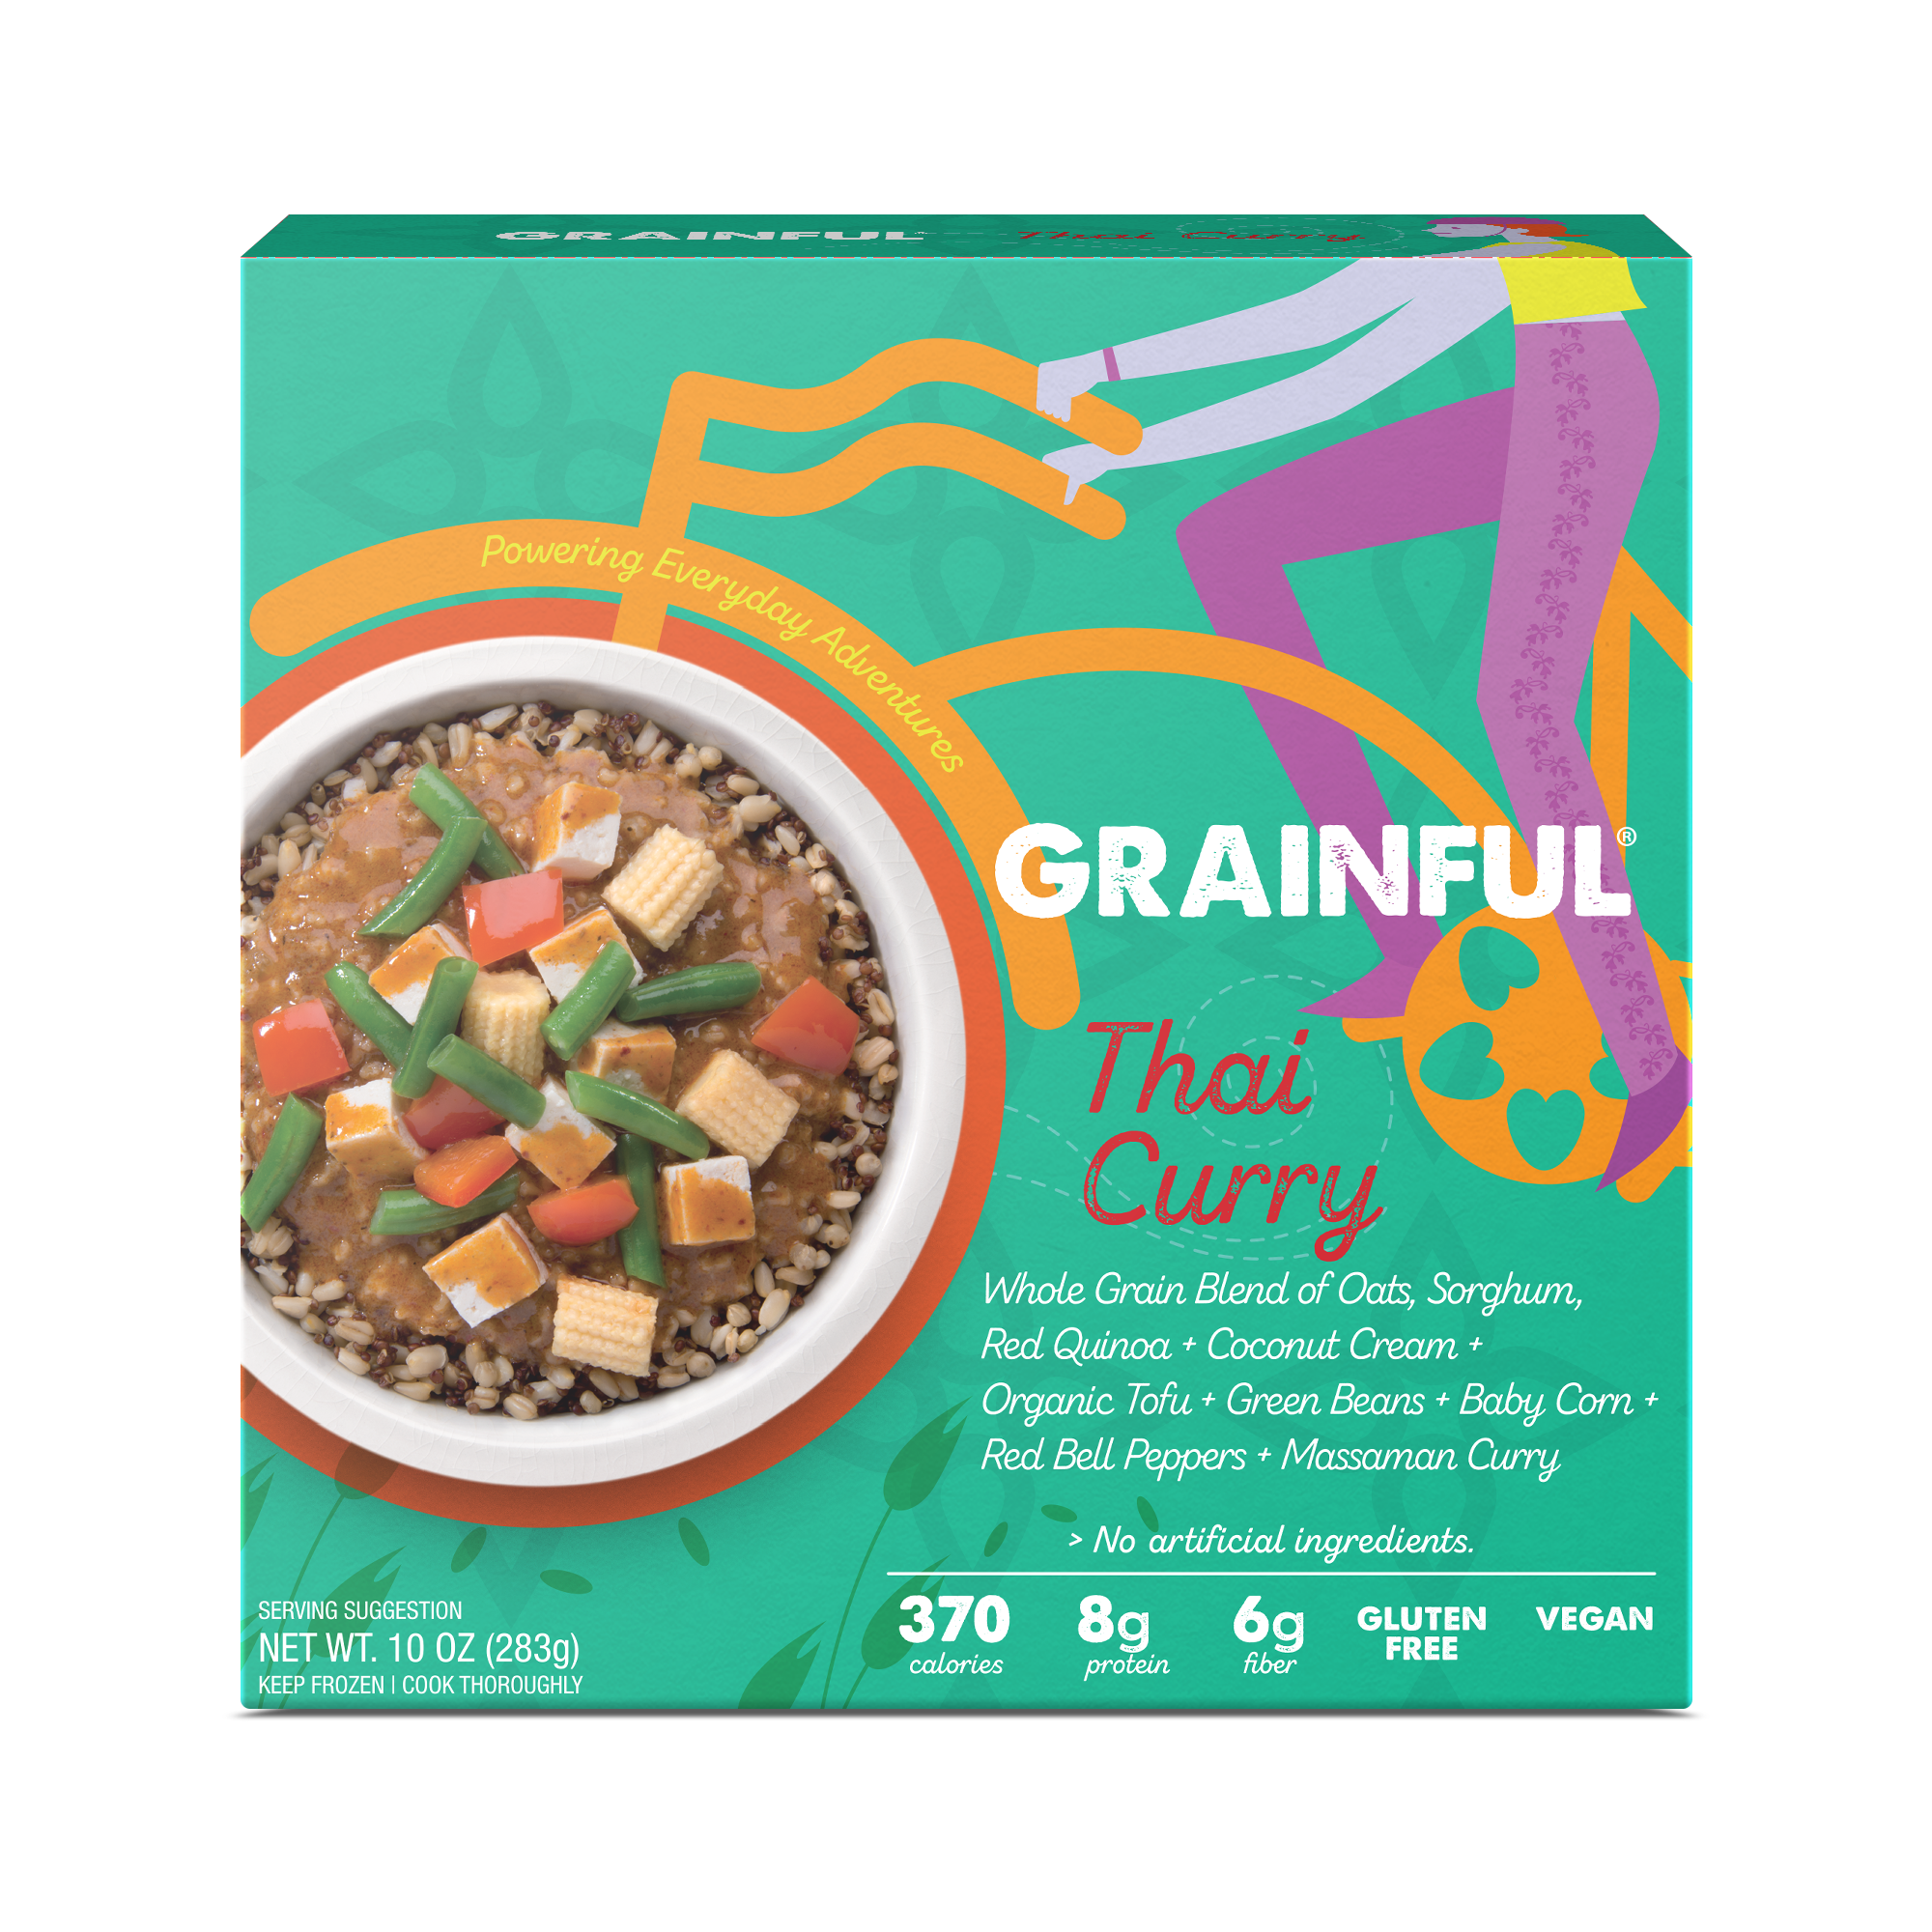 Grainful Amazon 3D Mockup_Thai Curry.png